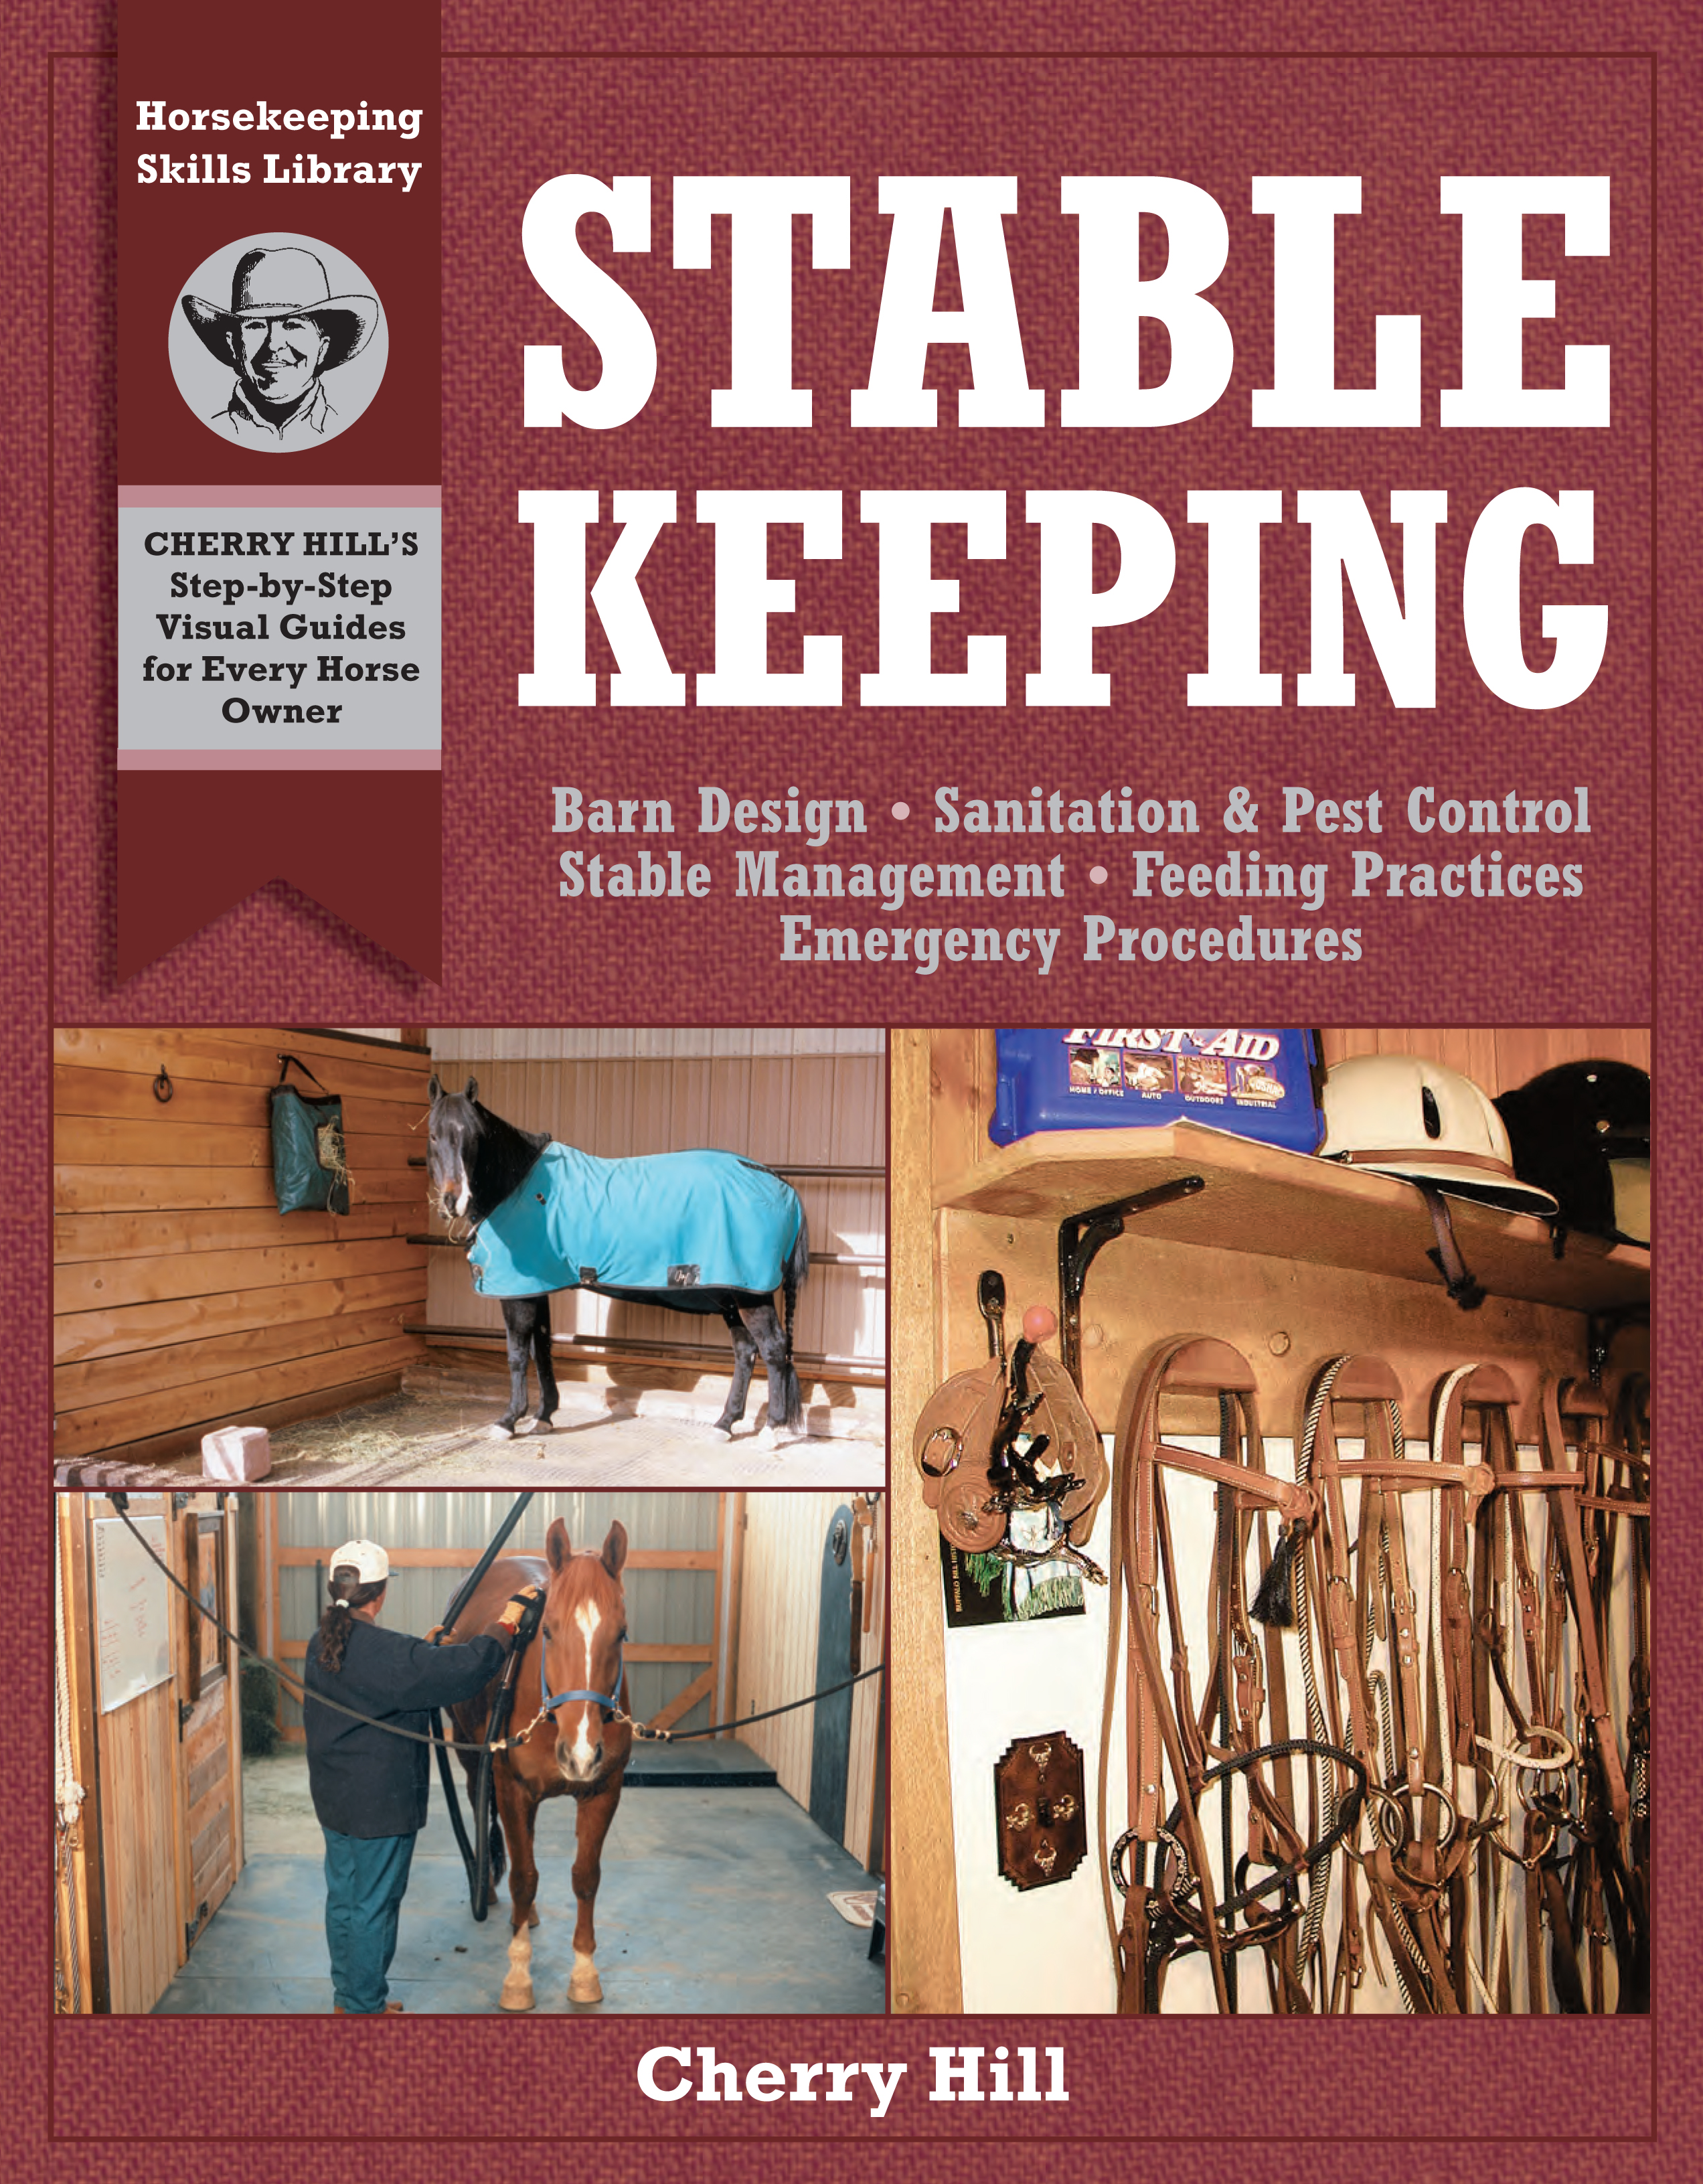 Stablekeeping A Visual Guide to Safe and Healthy Horsekeeping - Cherry Hill